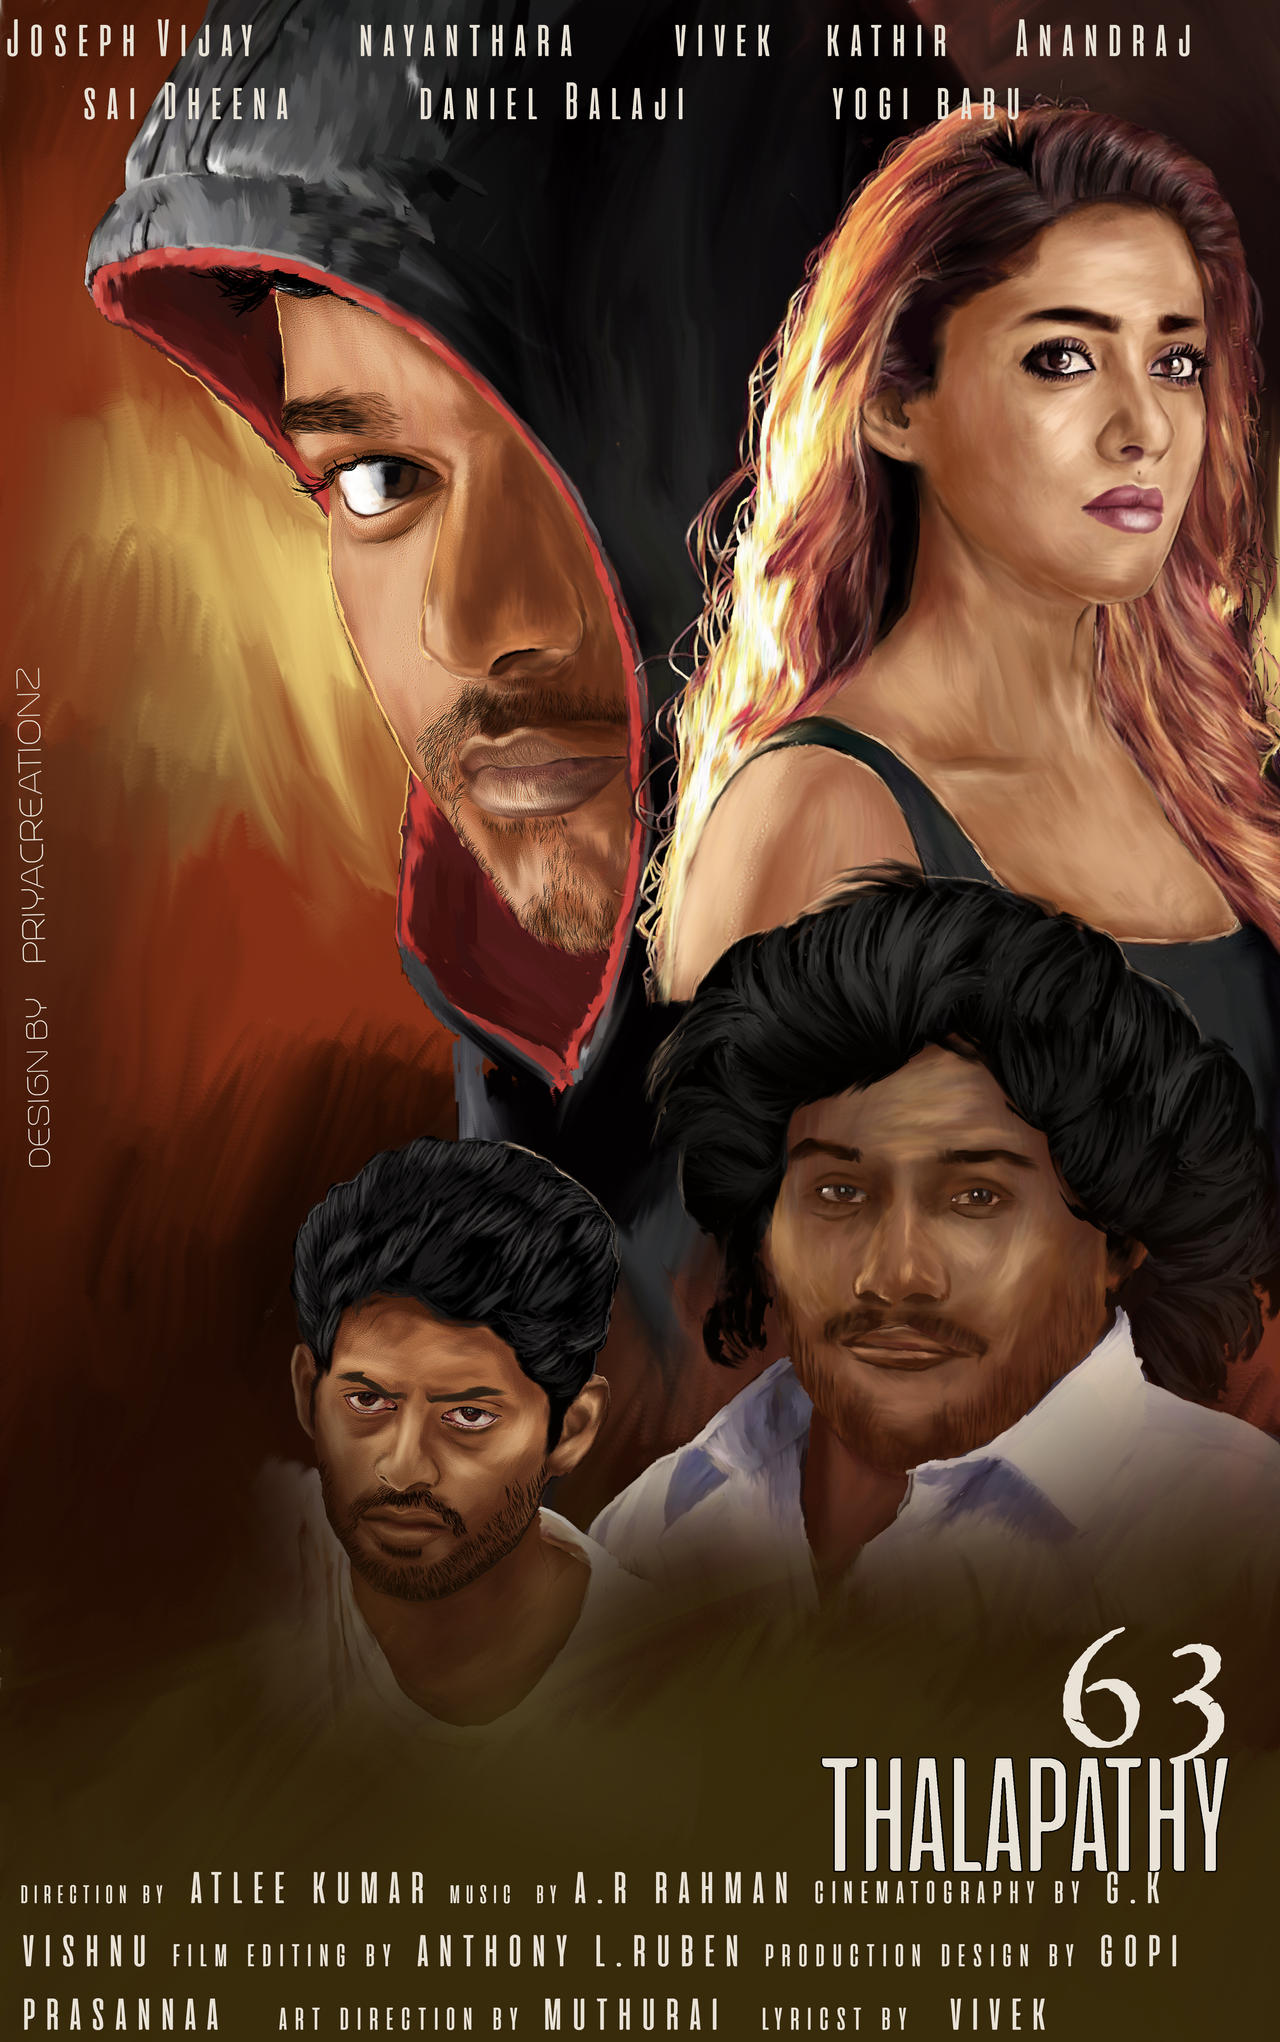 Thalapathy 63- Digital painting poster by PriyaCReationZ94